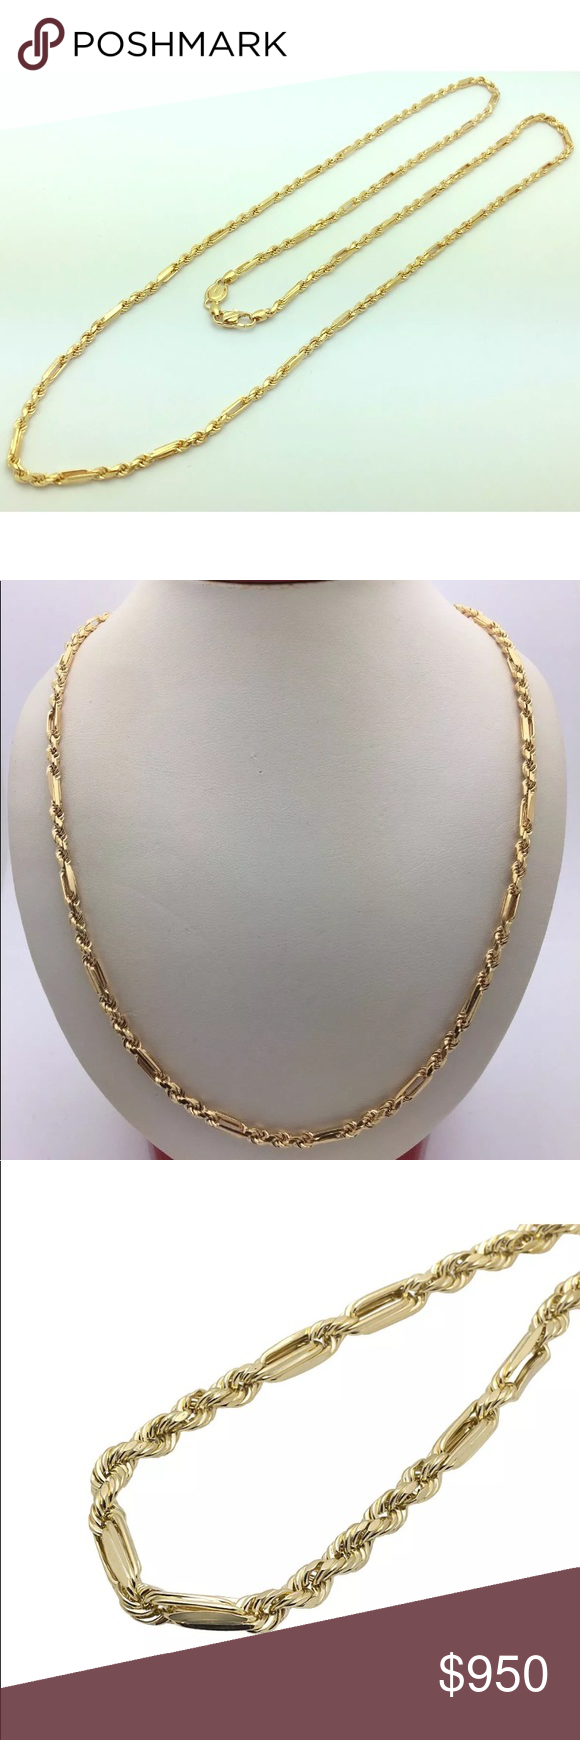 Solid Gold Milano Rope Chain 5mm Thick 24 Inches Rope Chain Solid Gold Gold